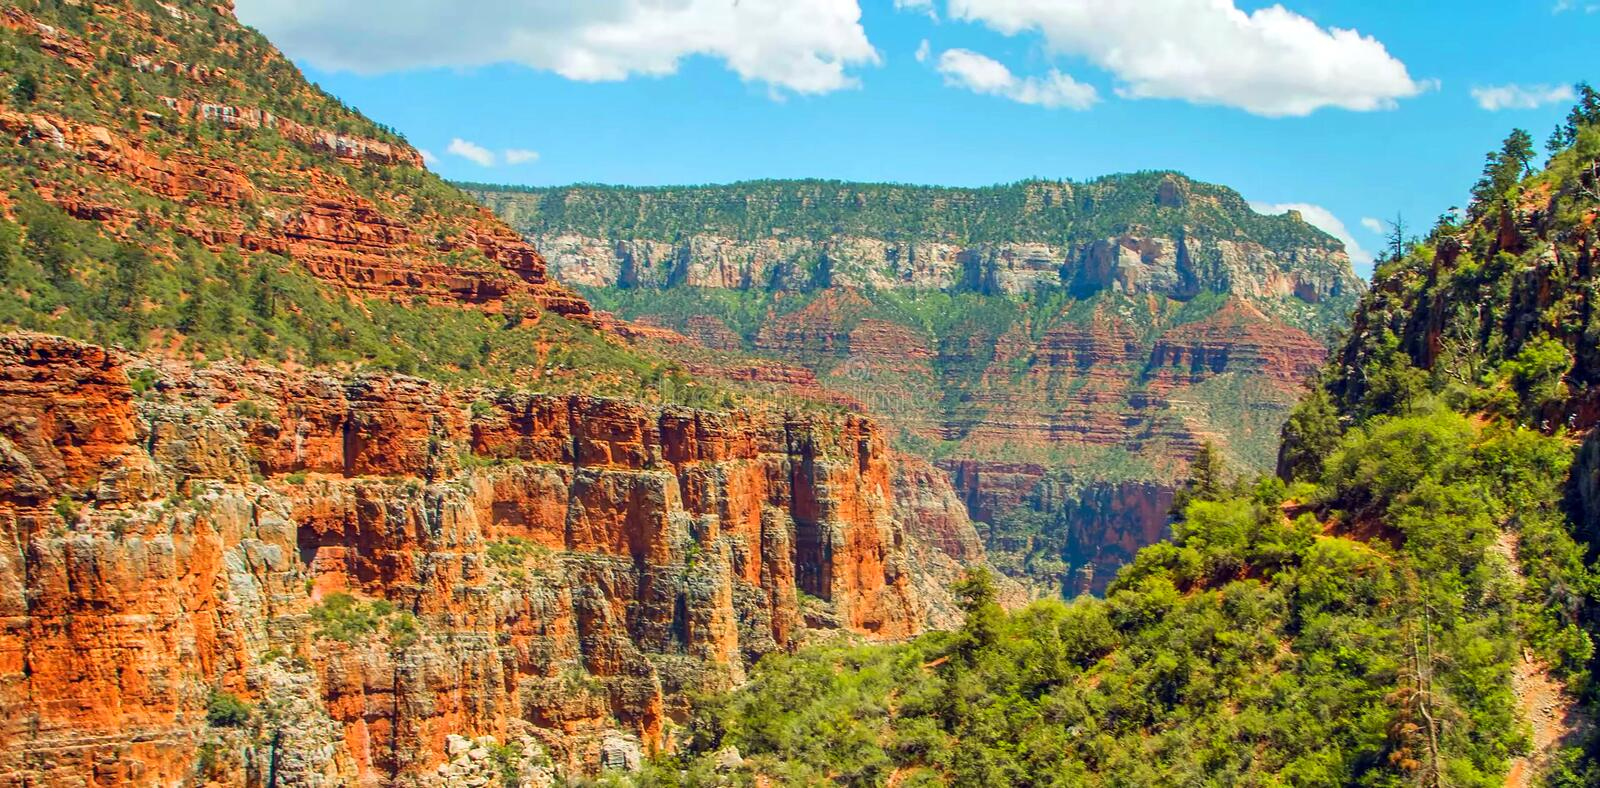 North Kaibab Trail in Grand Canyon National Park, Arizona, United States of America royalty free stock image